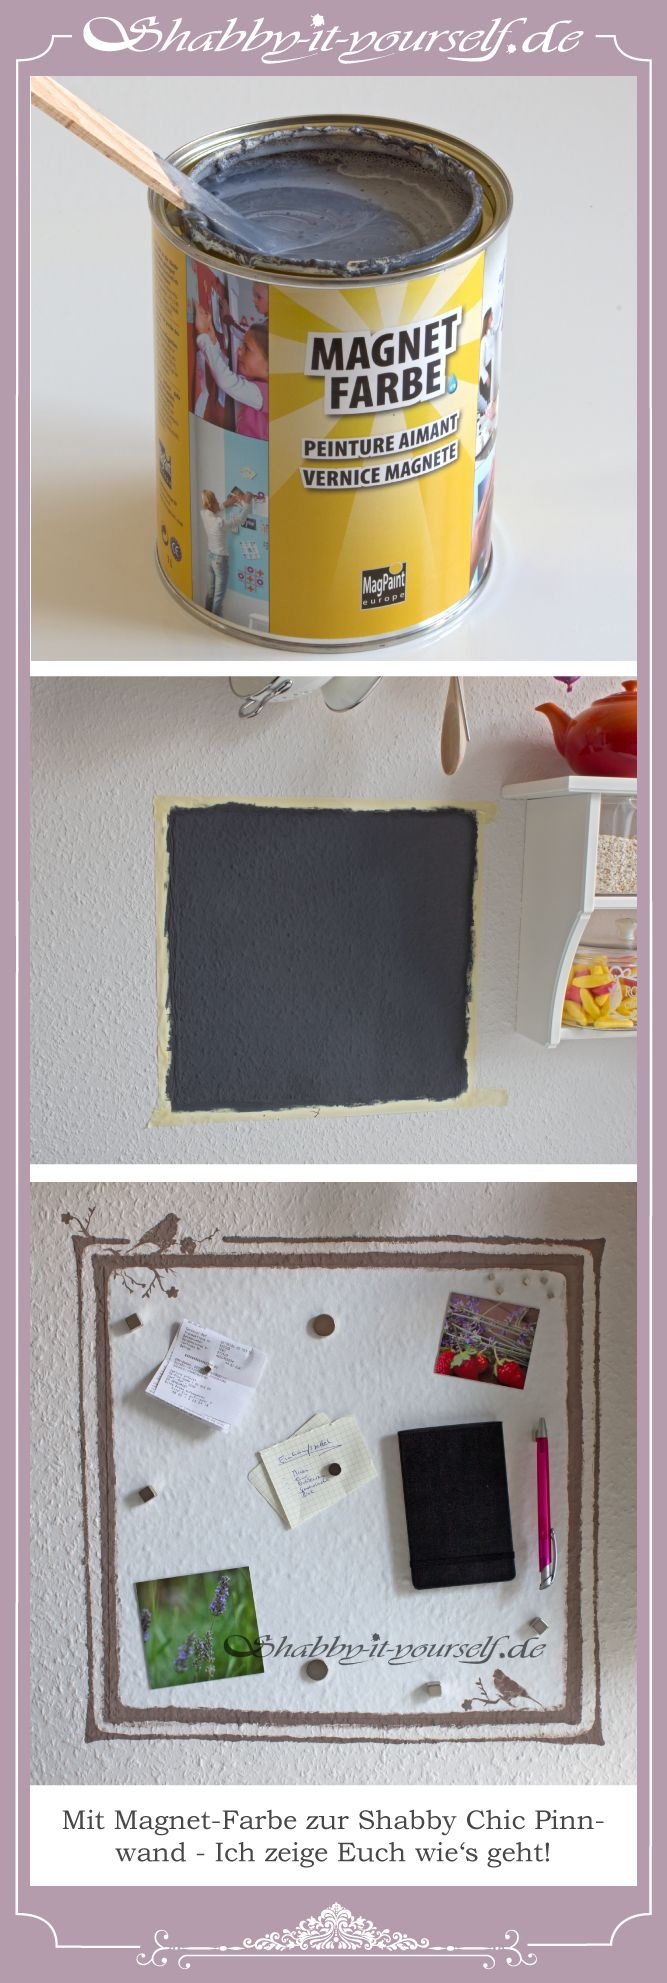 Wall Decorations, Shabby Chic, Smallest House, Upcycling, Tiny Houses,  Roses, Paint Walls, Simple, Magnets